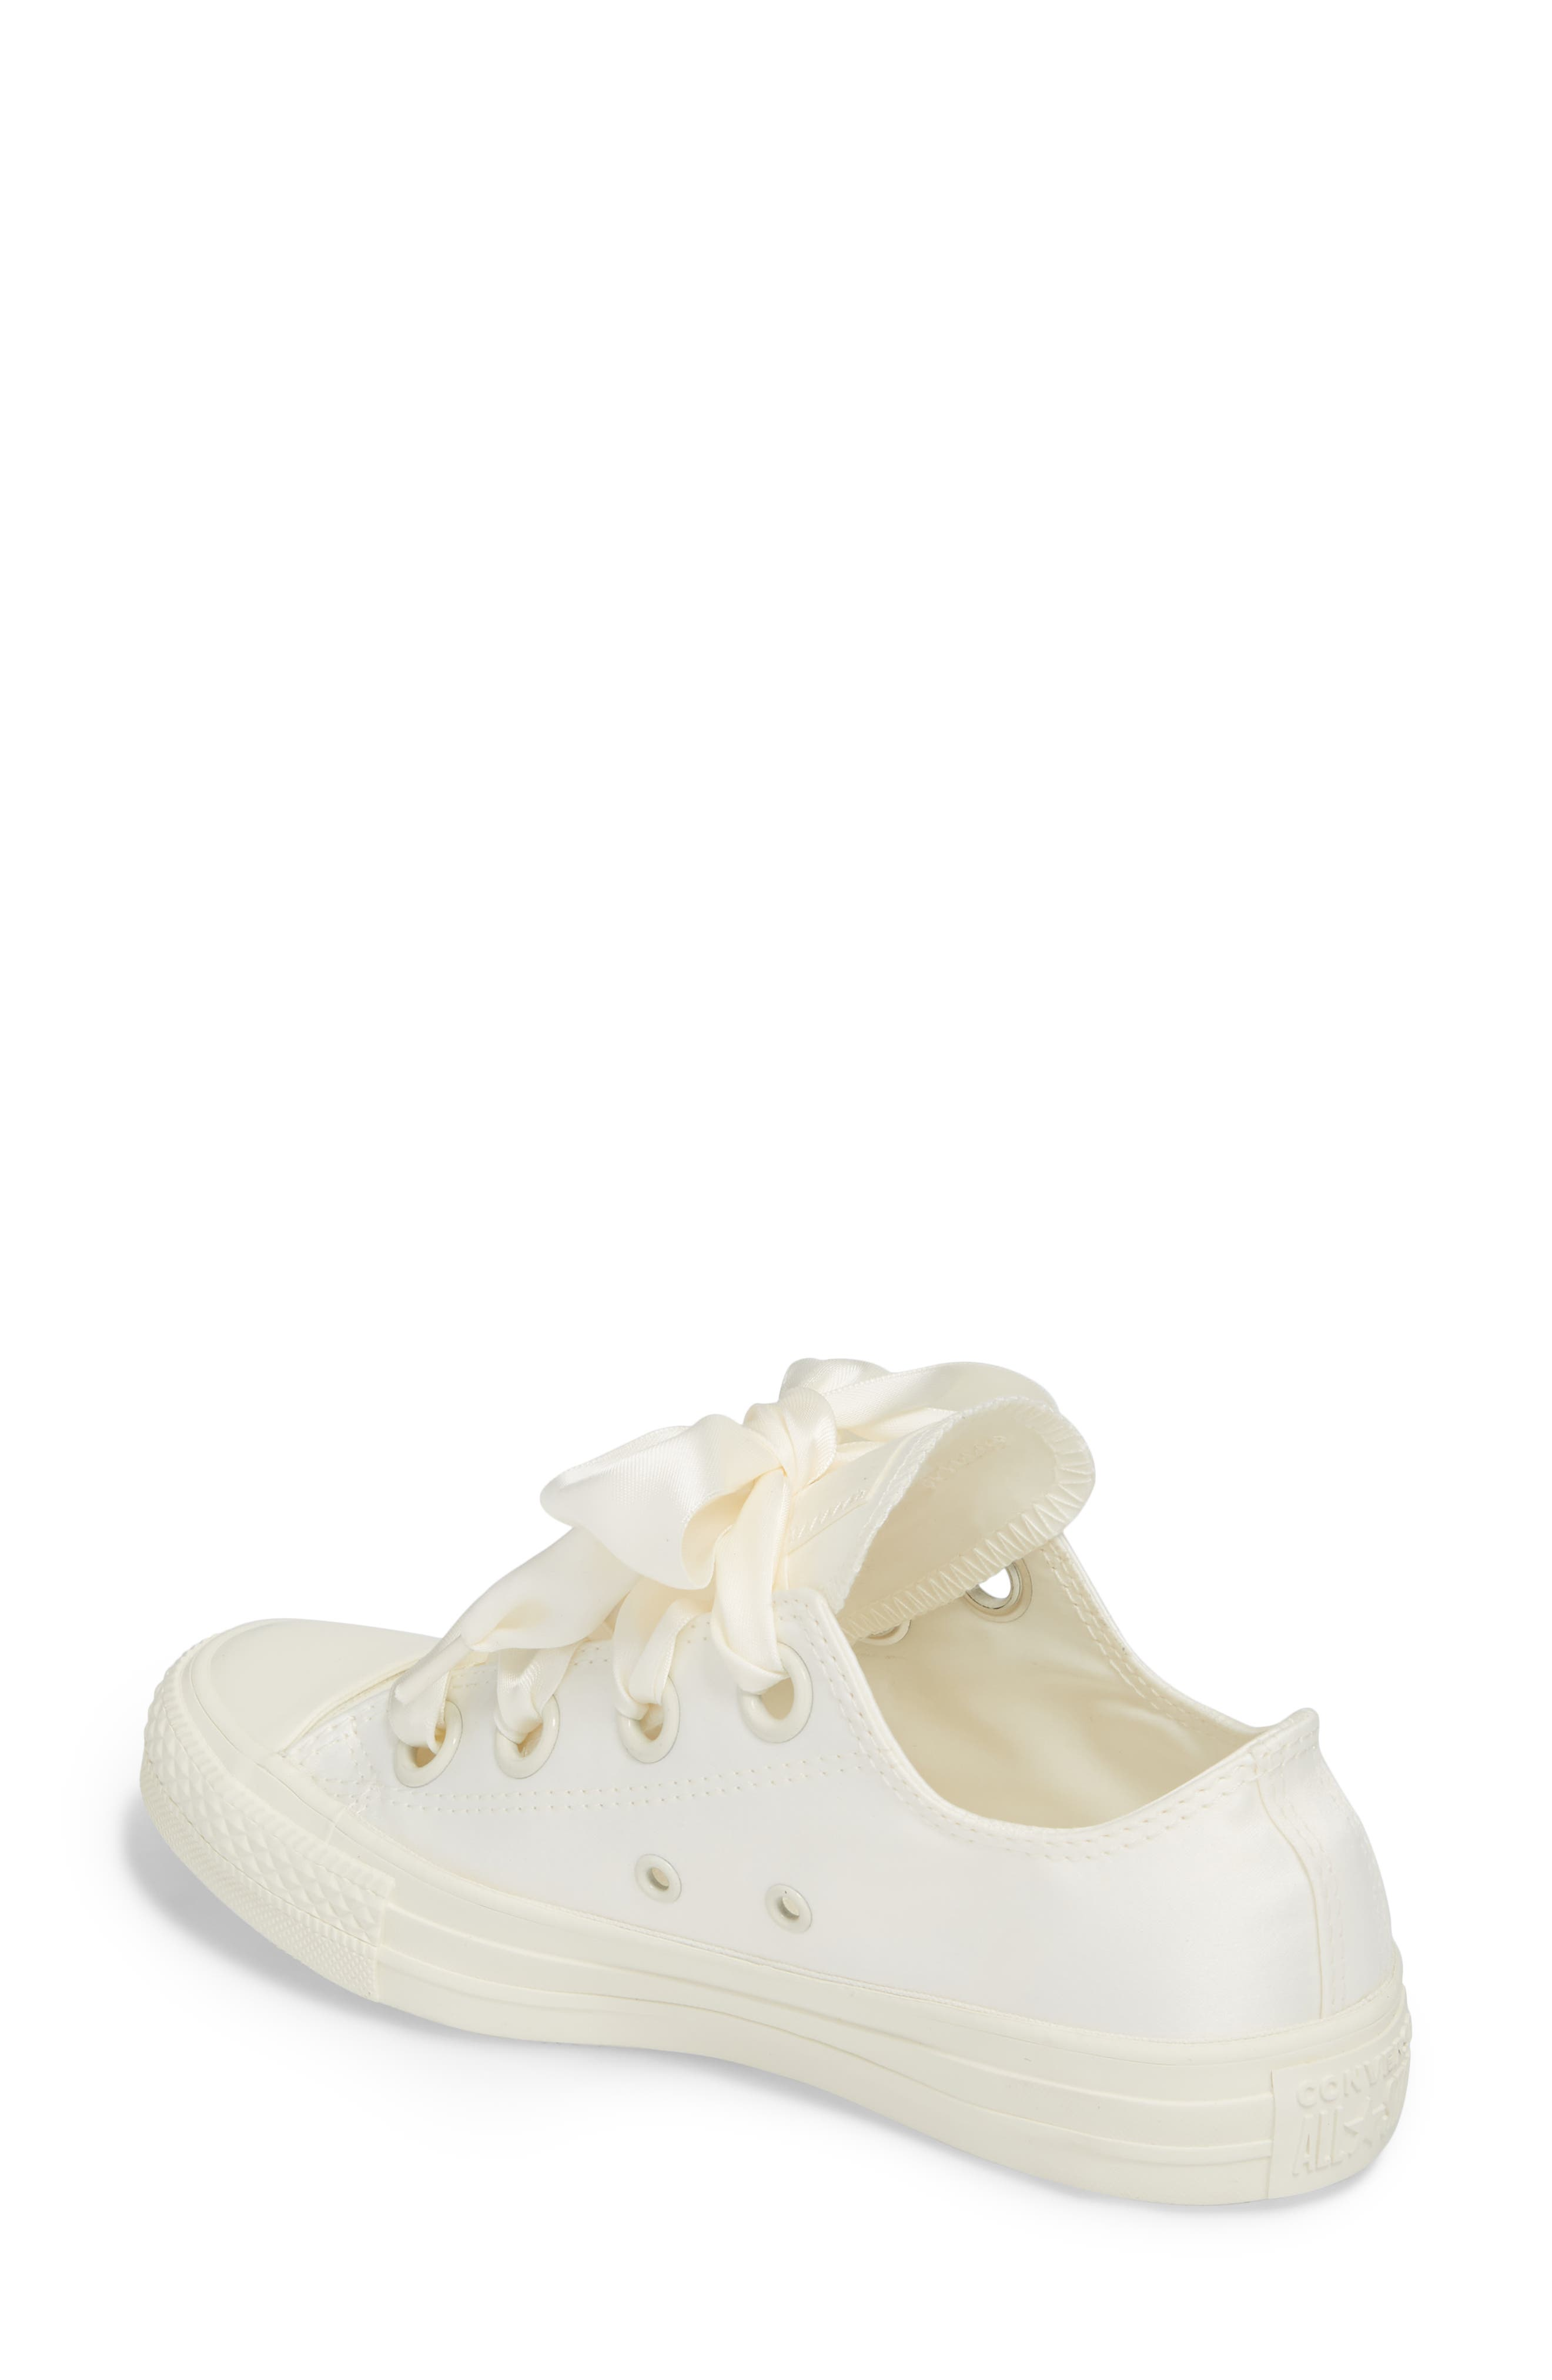 Chuck Taylor<sup>®</sup> All Star<sup>®</sup> Big Eyelet Ox Sneaker,                             Alternate thumbnail 7, color,